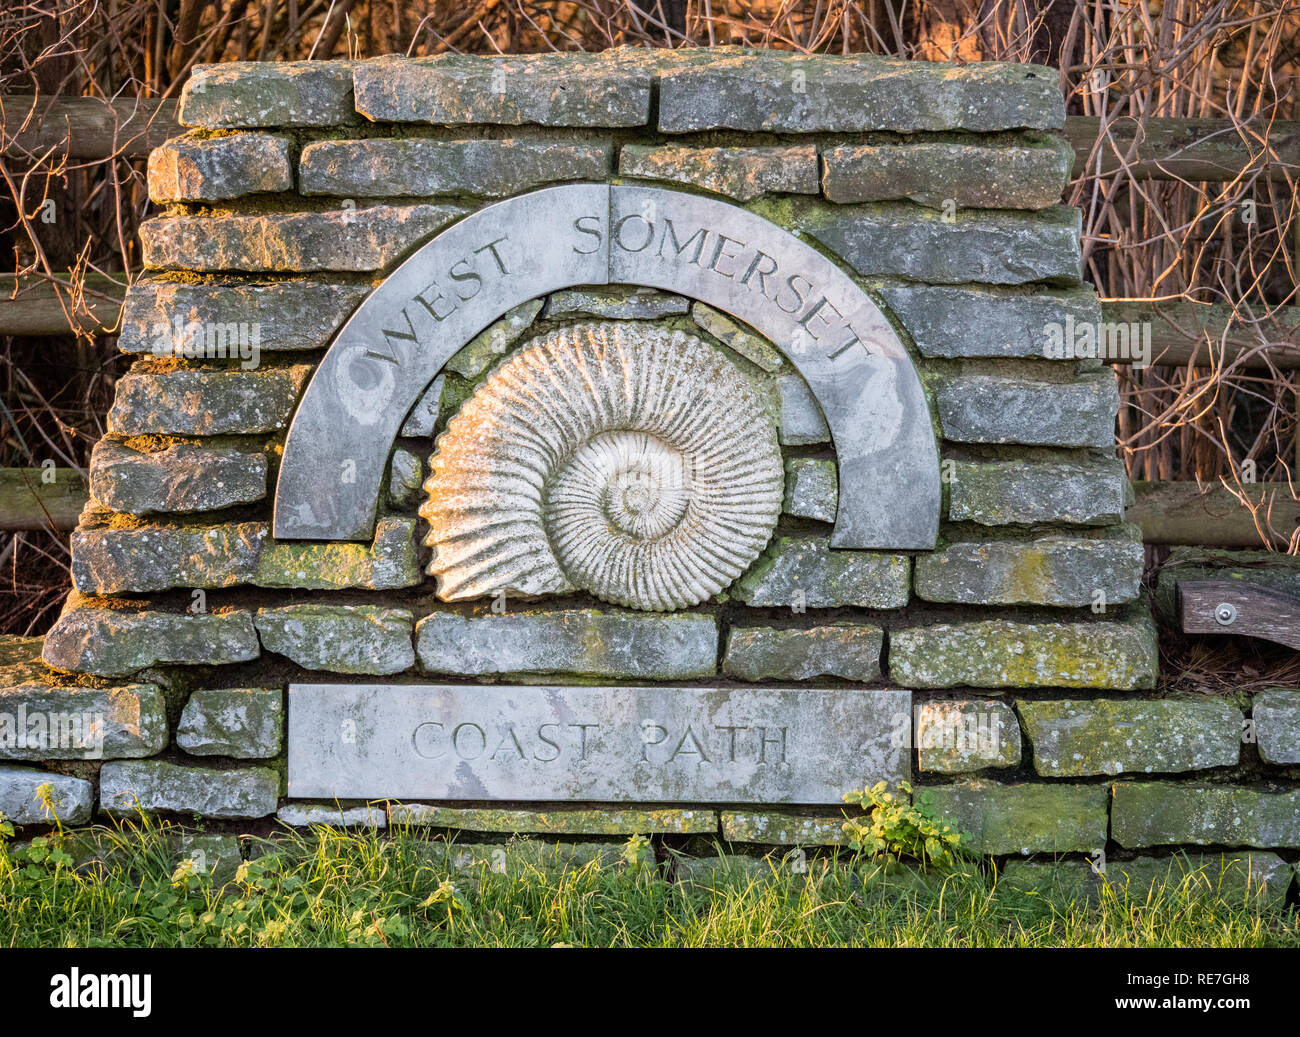 Starting pont of the West Somerset coast path in Minehead which skirts the county's Jurassic coast and has an ammonite as its emblem - Stock Image